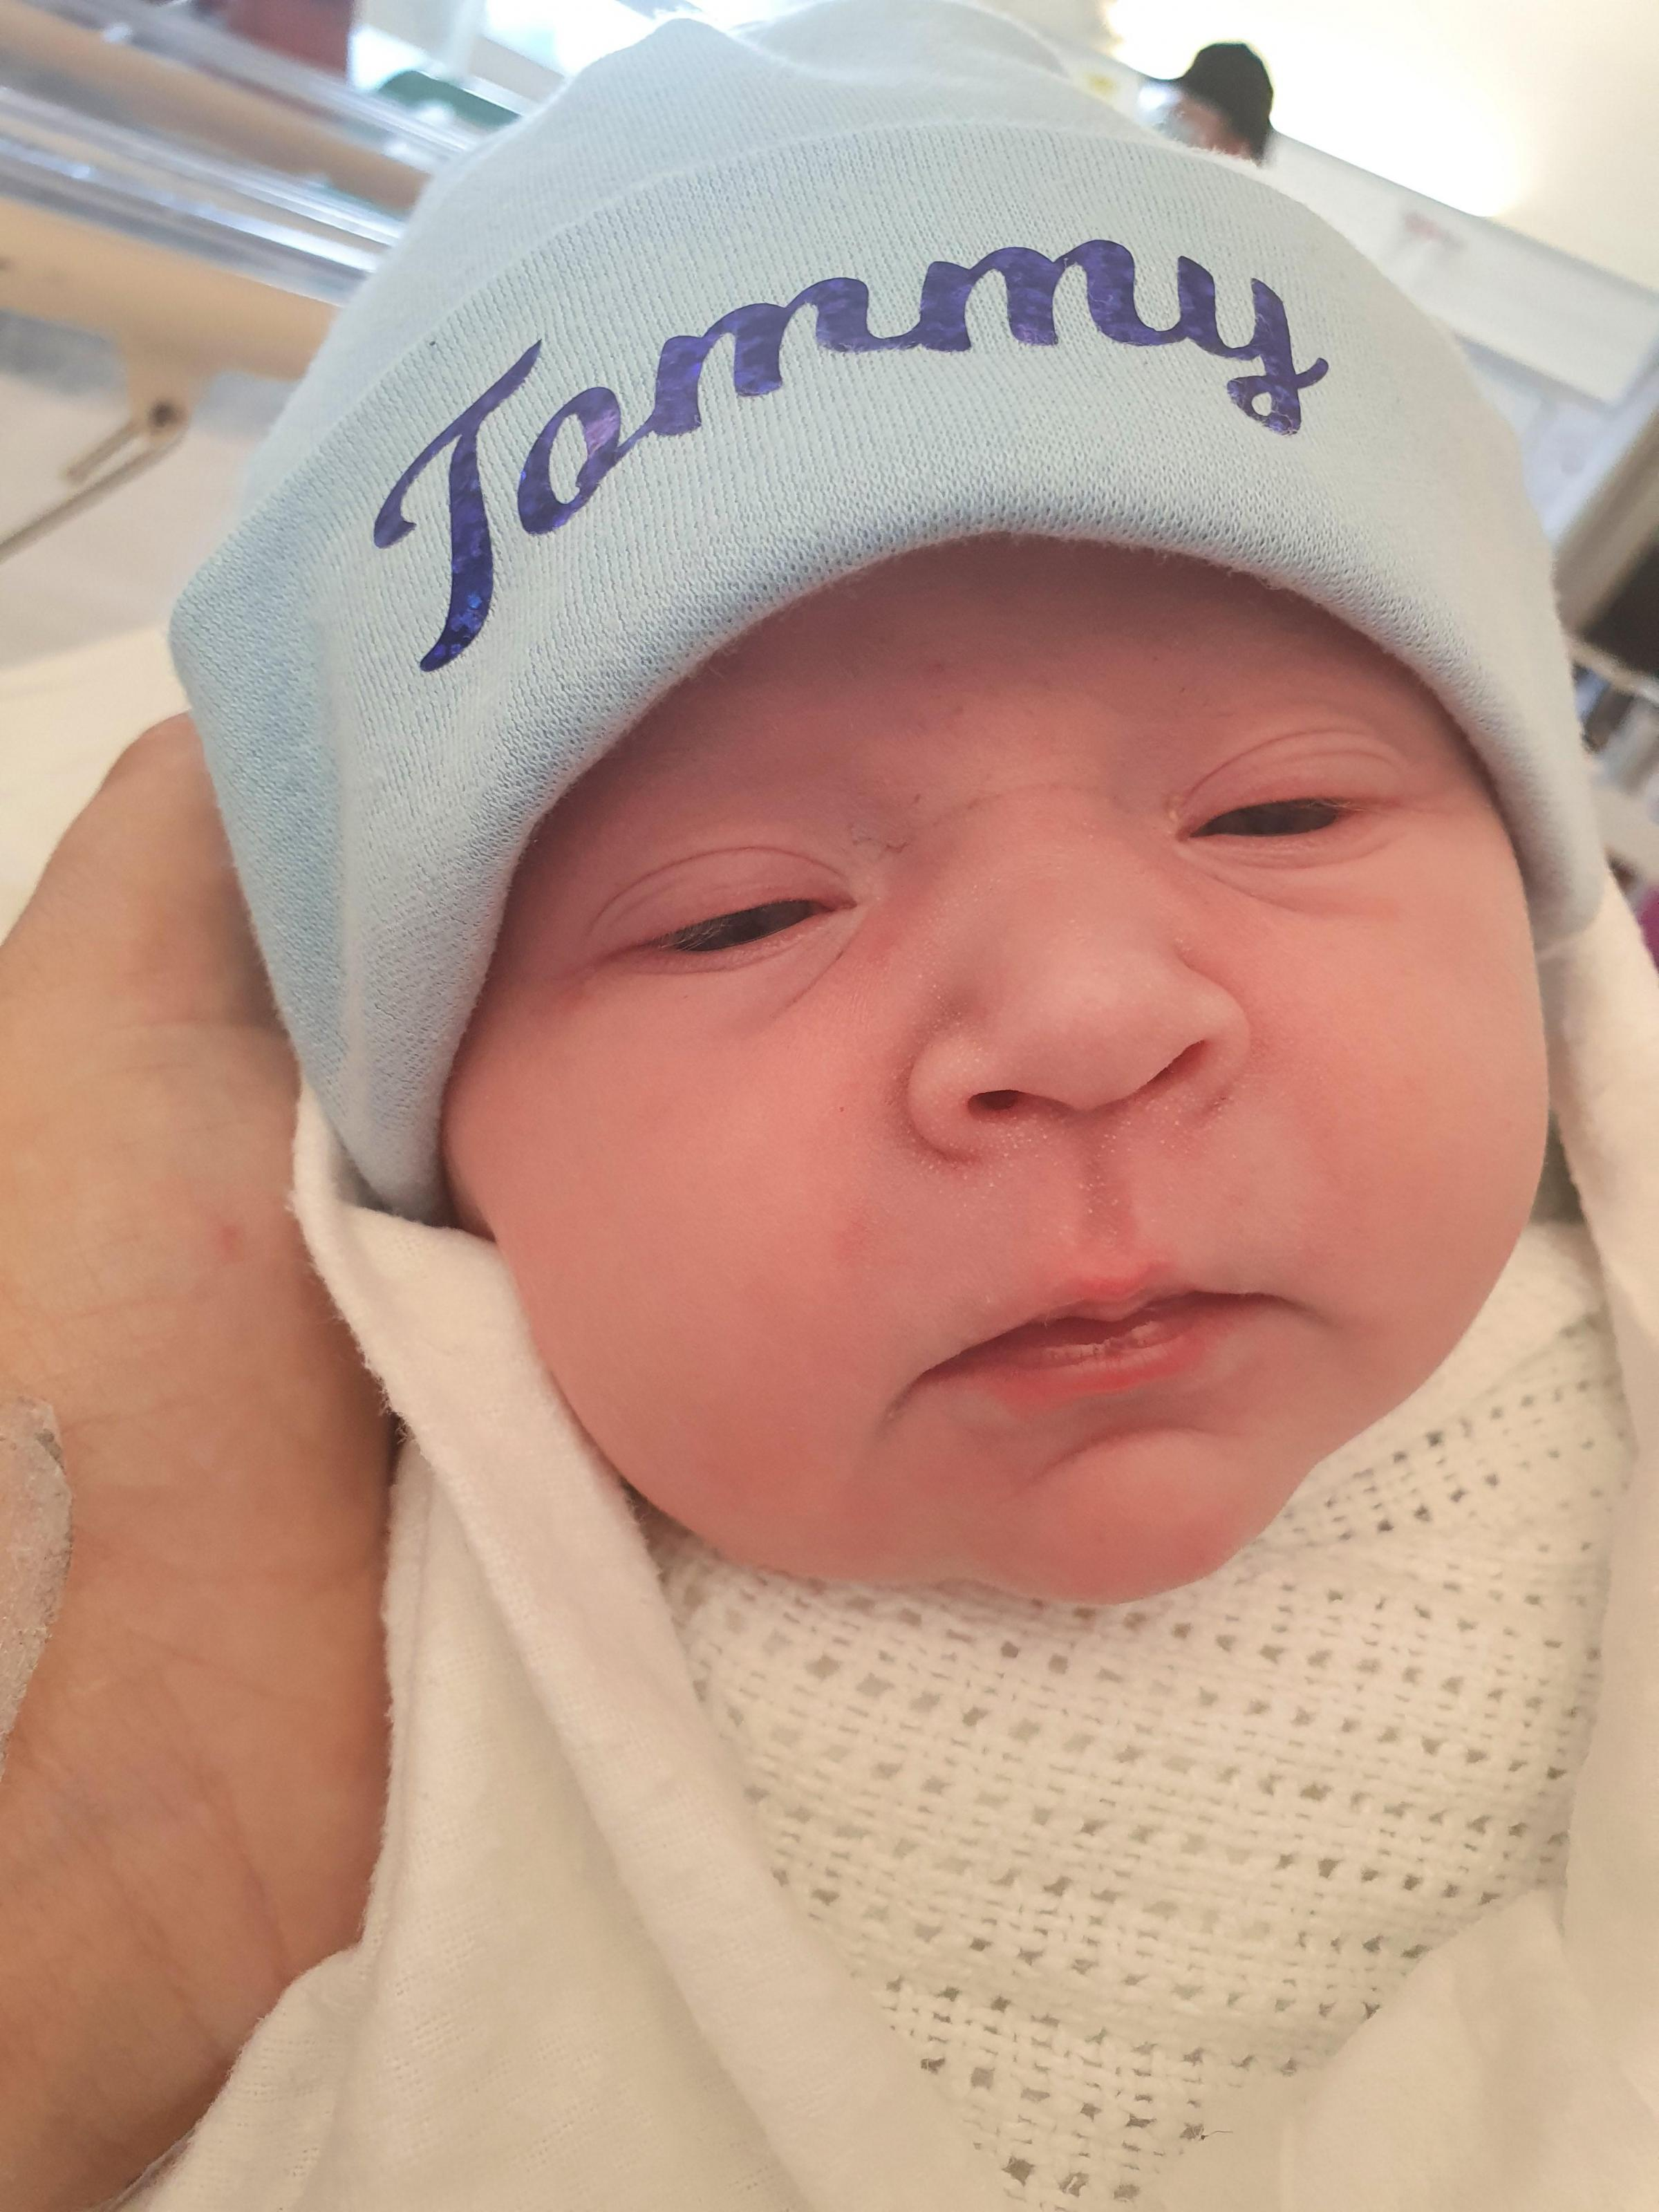 St Helens Star: Tommy-James Blyth born 09/10/20 from fingerpost weighing 7lbs.1oz